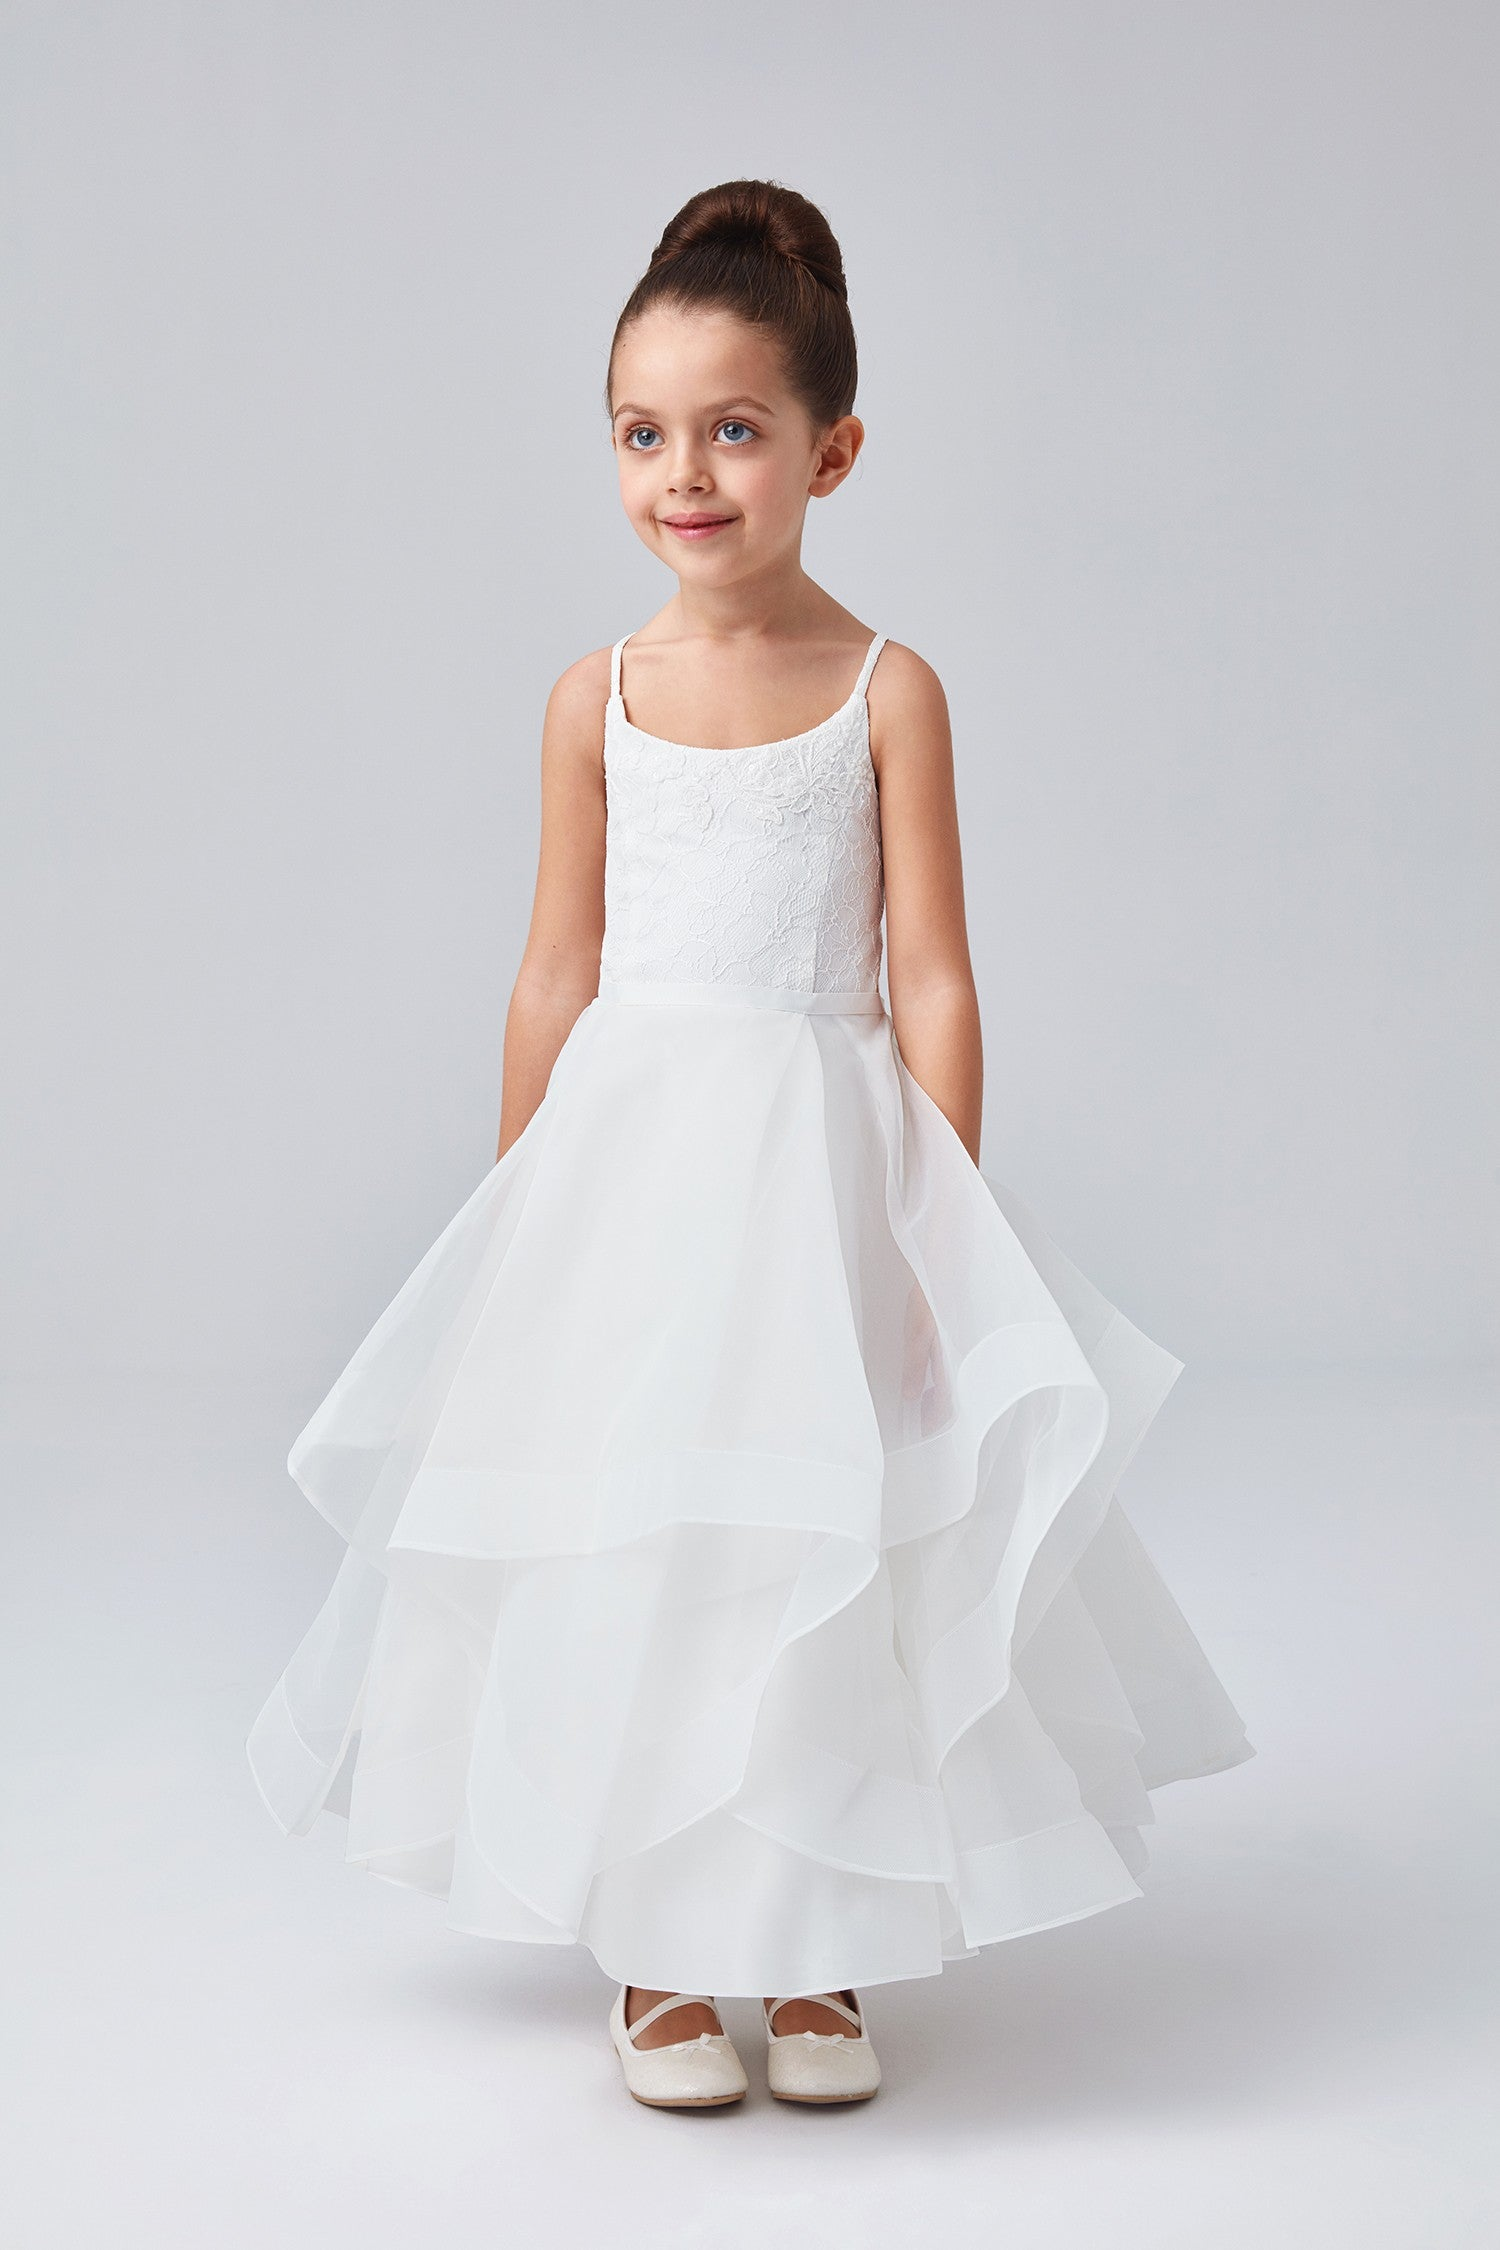 Lace And Tulle Flower Girl Dress With Full Skirt Wg1371